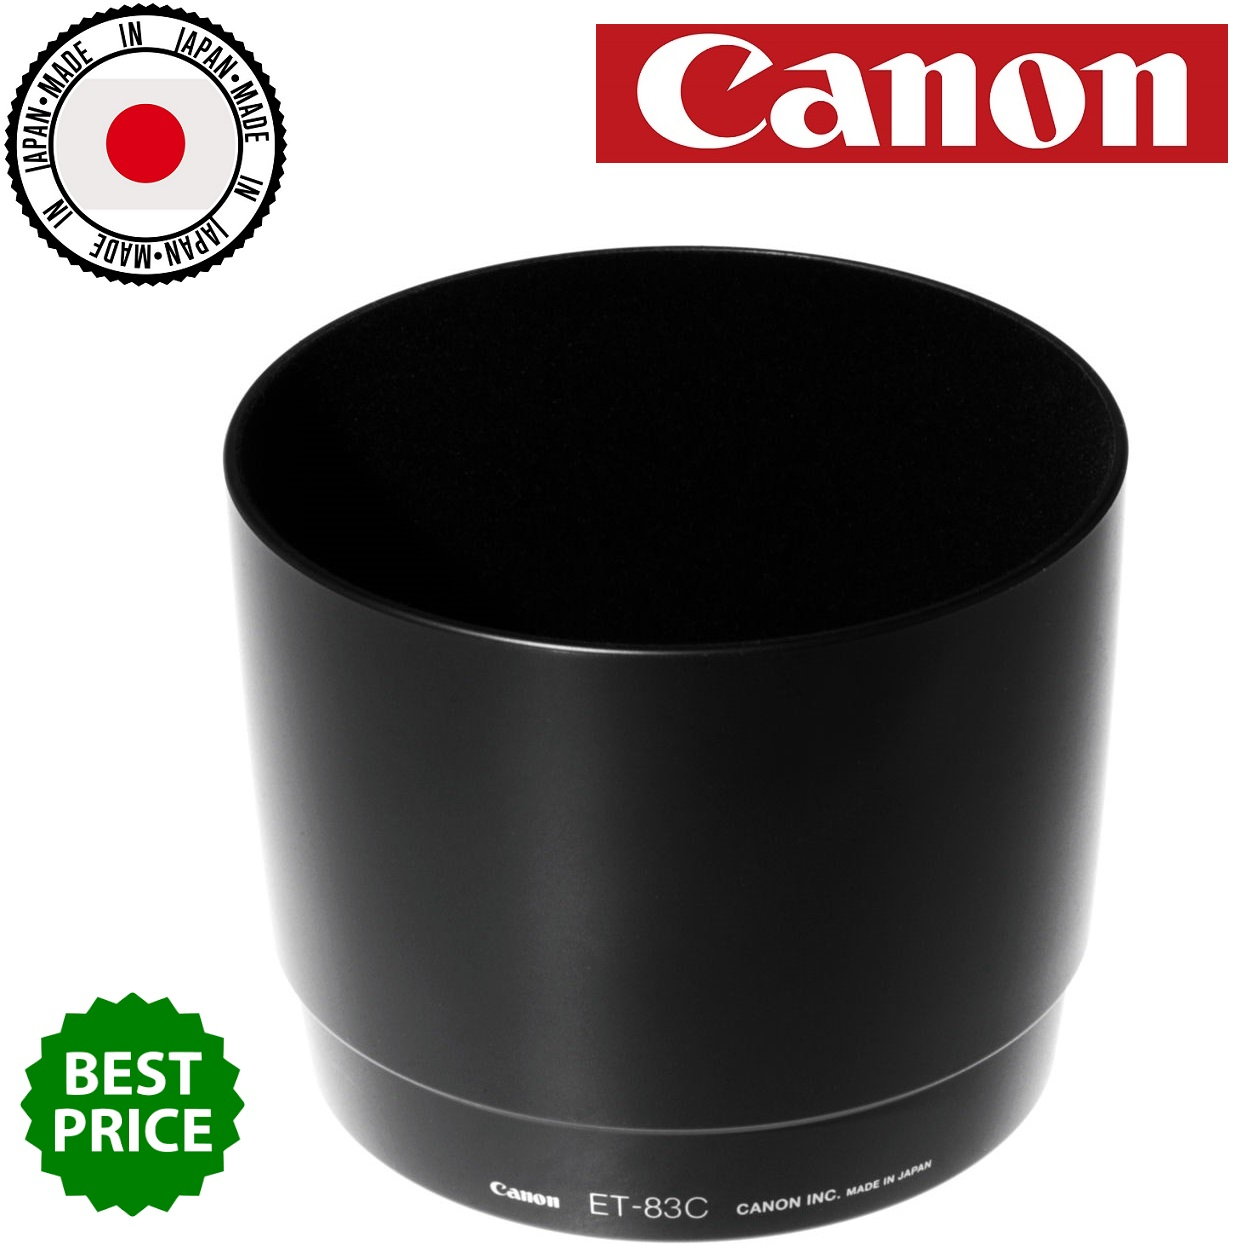 Canon ET-83C Lens Hood Designed for EF 100-400mm f4.5-5.6L IS Lens